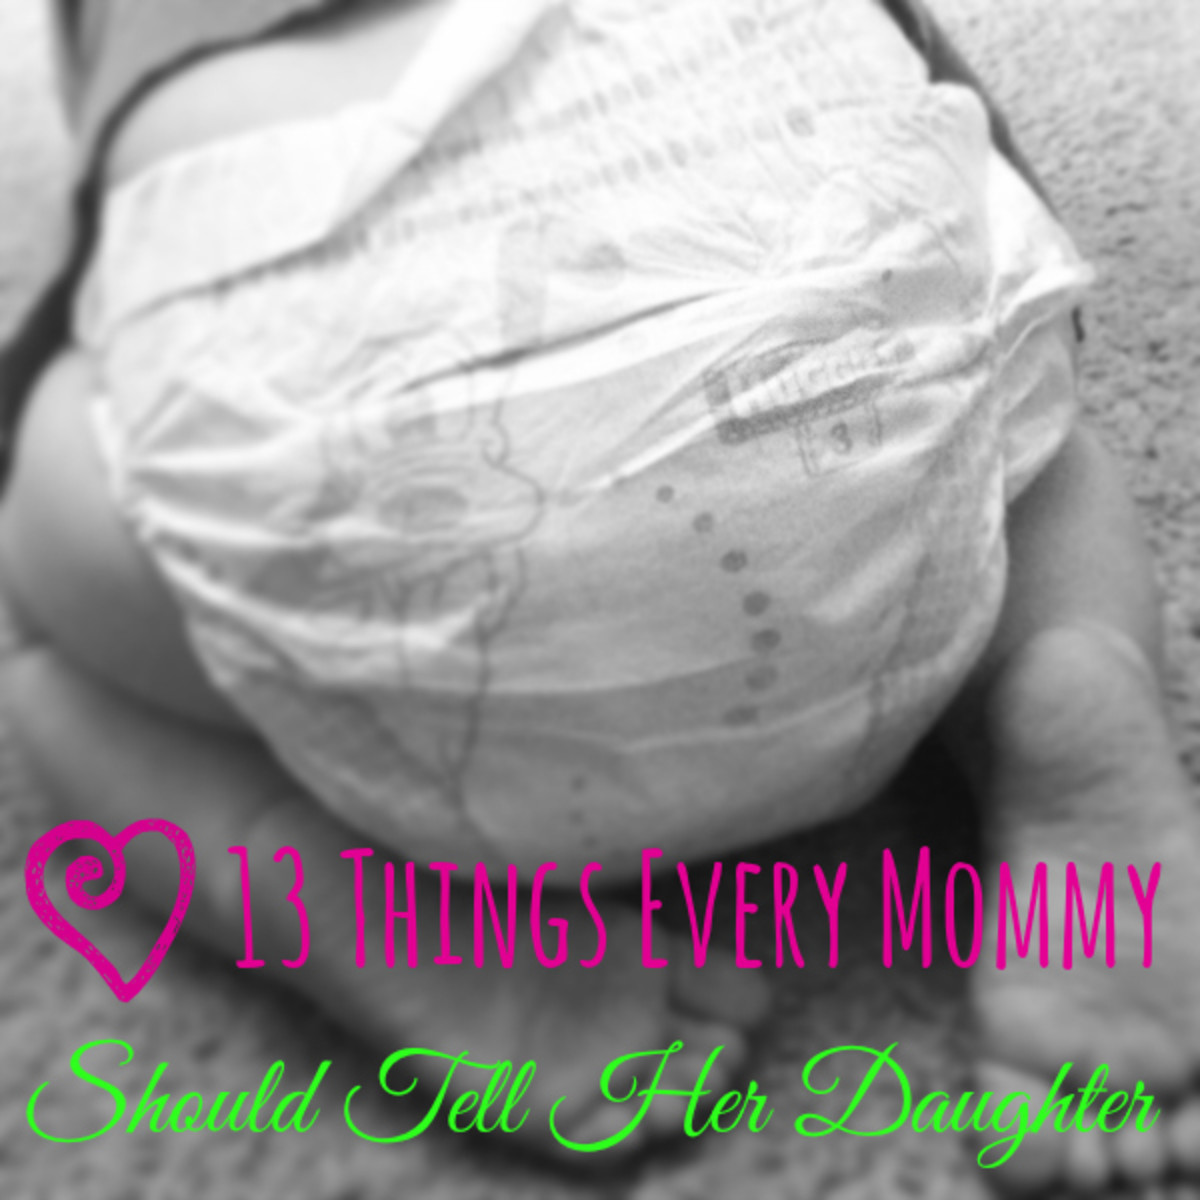 13 Things Every Mommy Should Tell Her Daughter